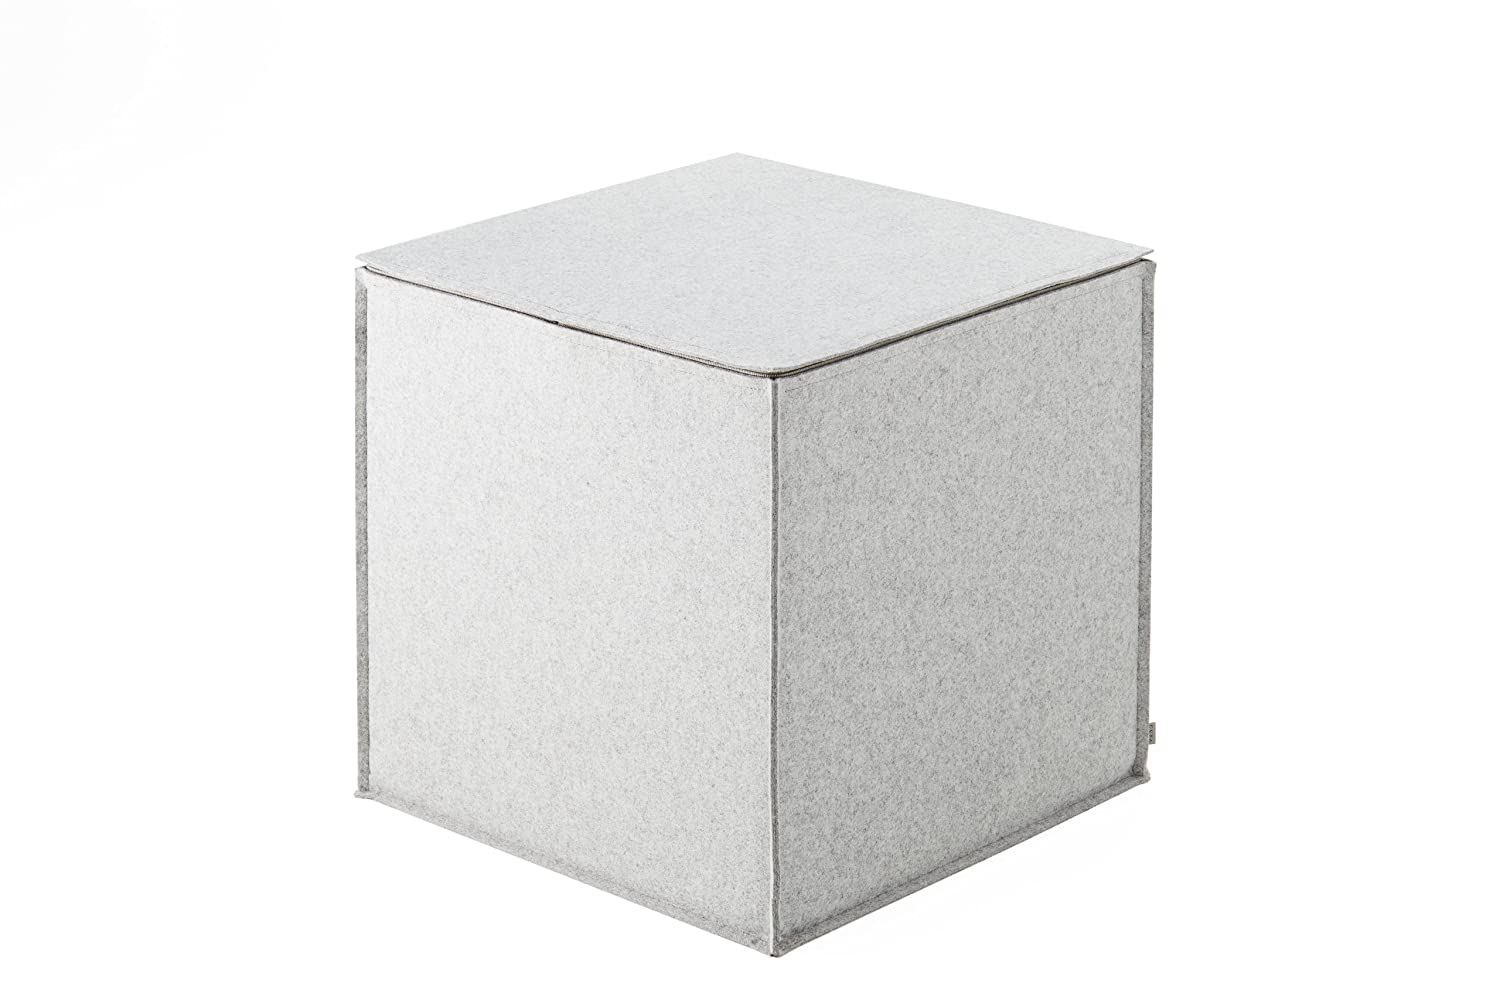 filz cubus sitzw rfel hocker sitzhocker pouf hell grau 45 x 45 x 45 ebay. Black Bedroom Furniture Sets. Home Design Ideas